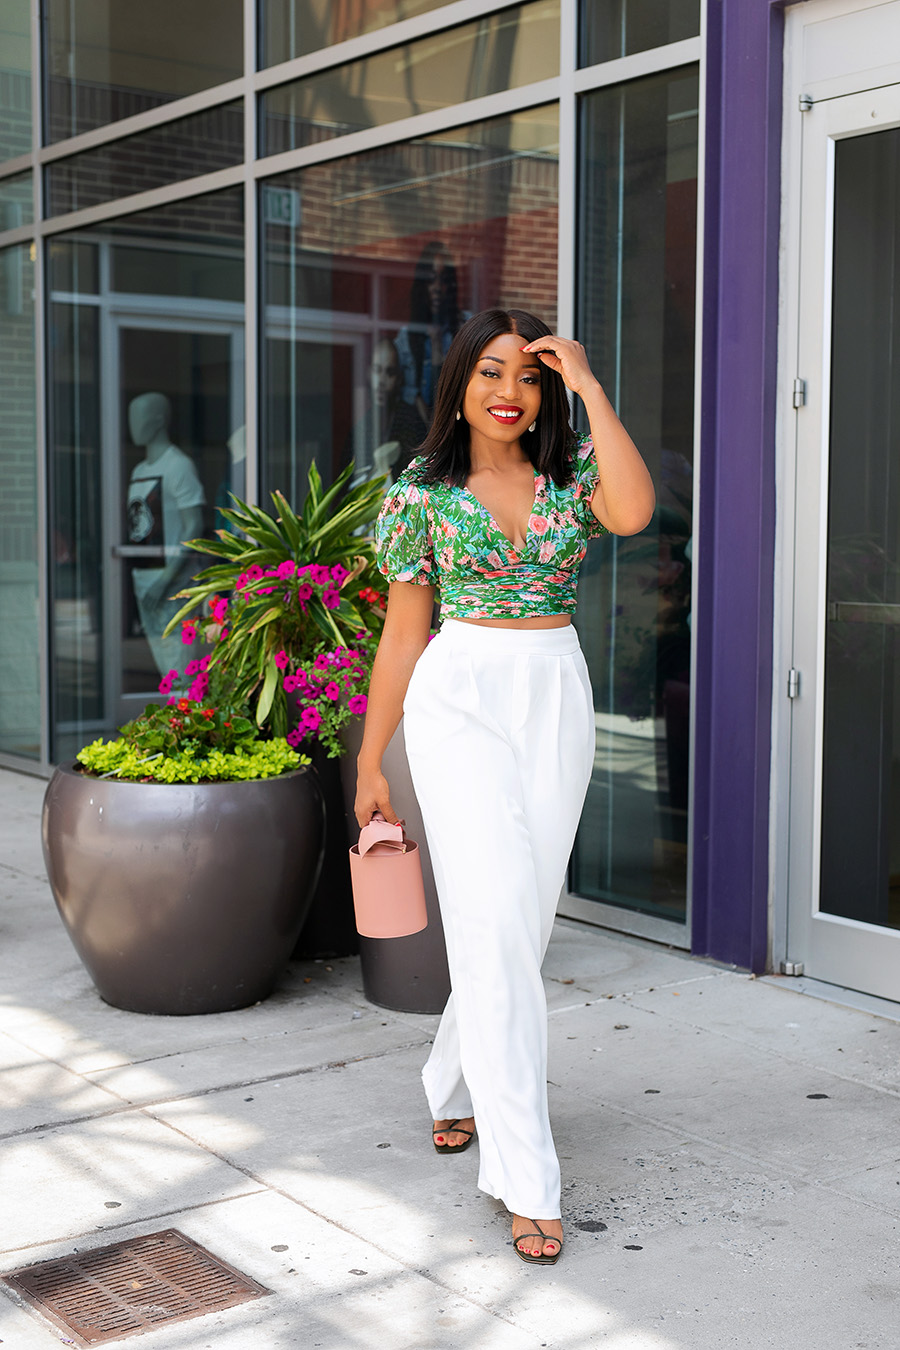 floral top and white pants